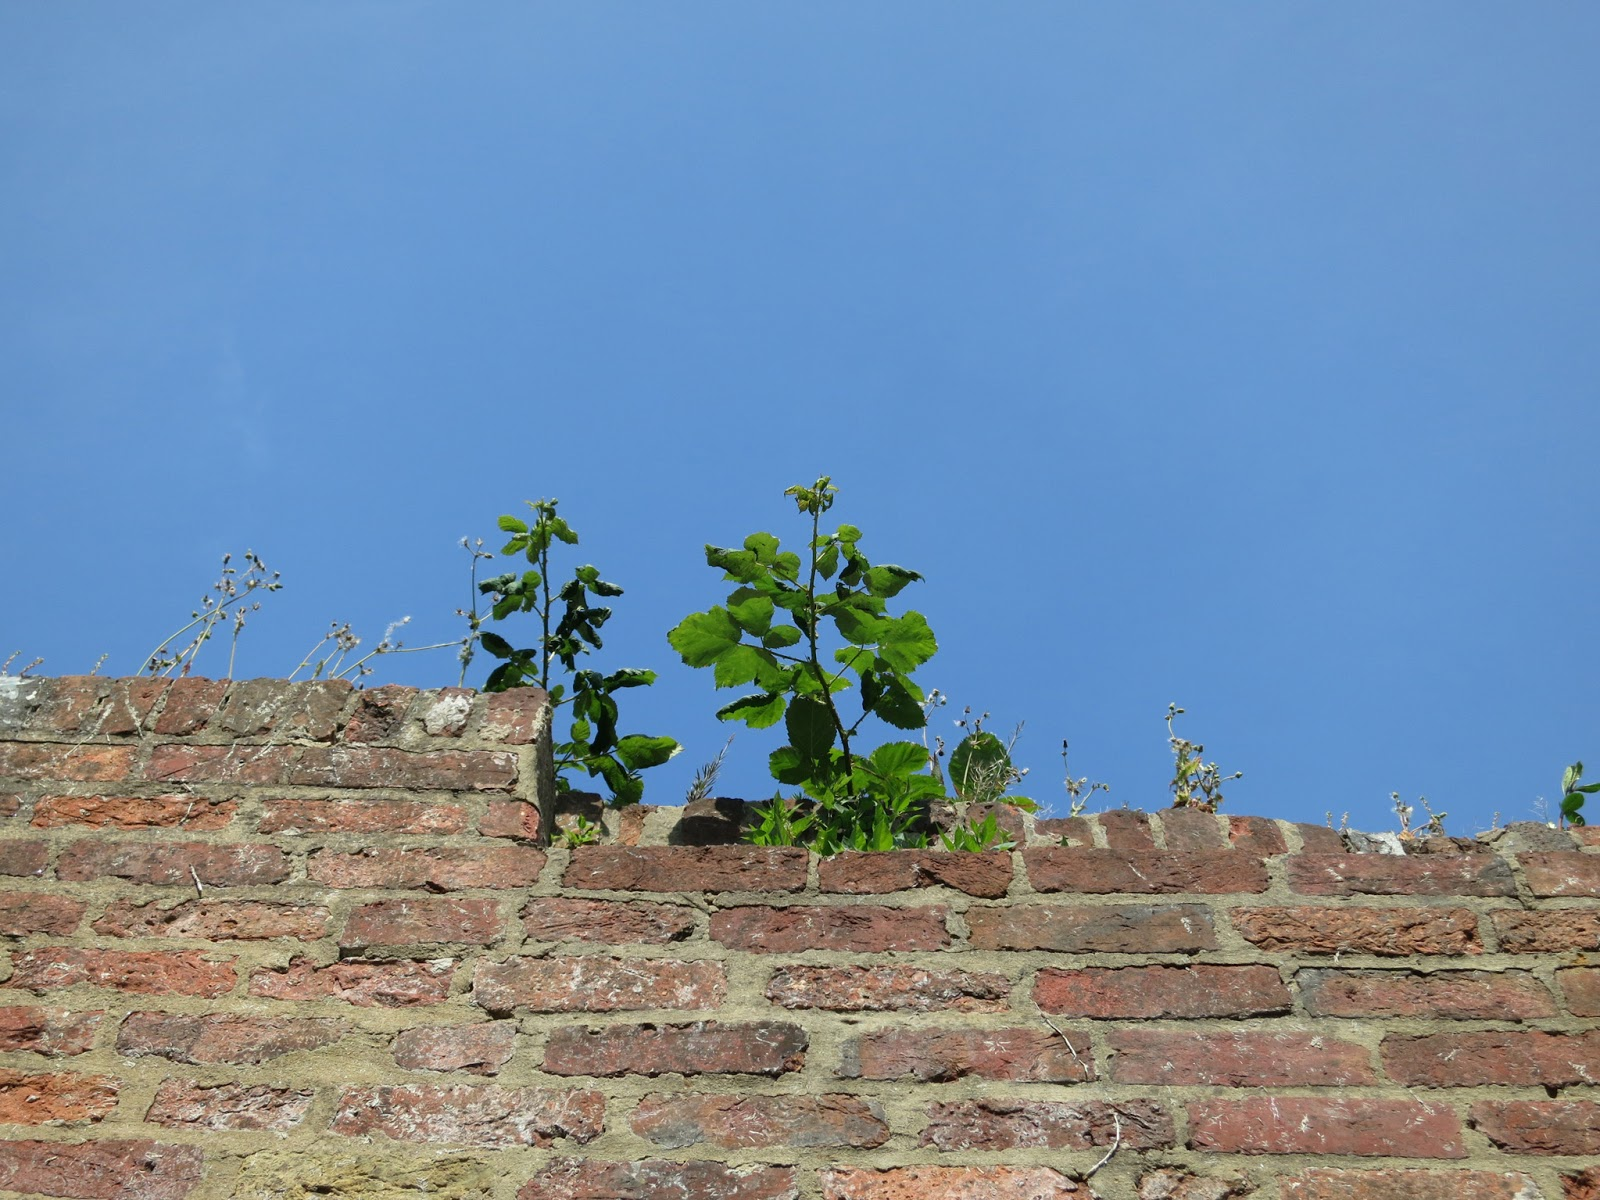 Plants growing on top of wall against blue sky